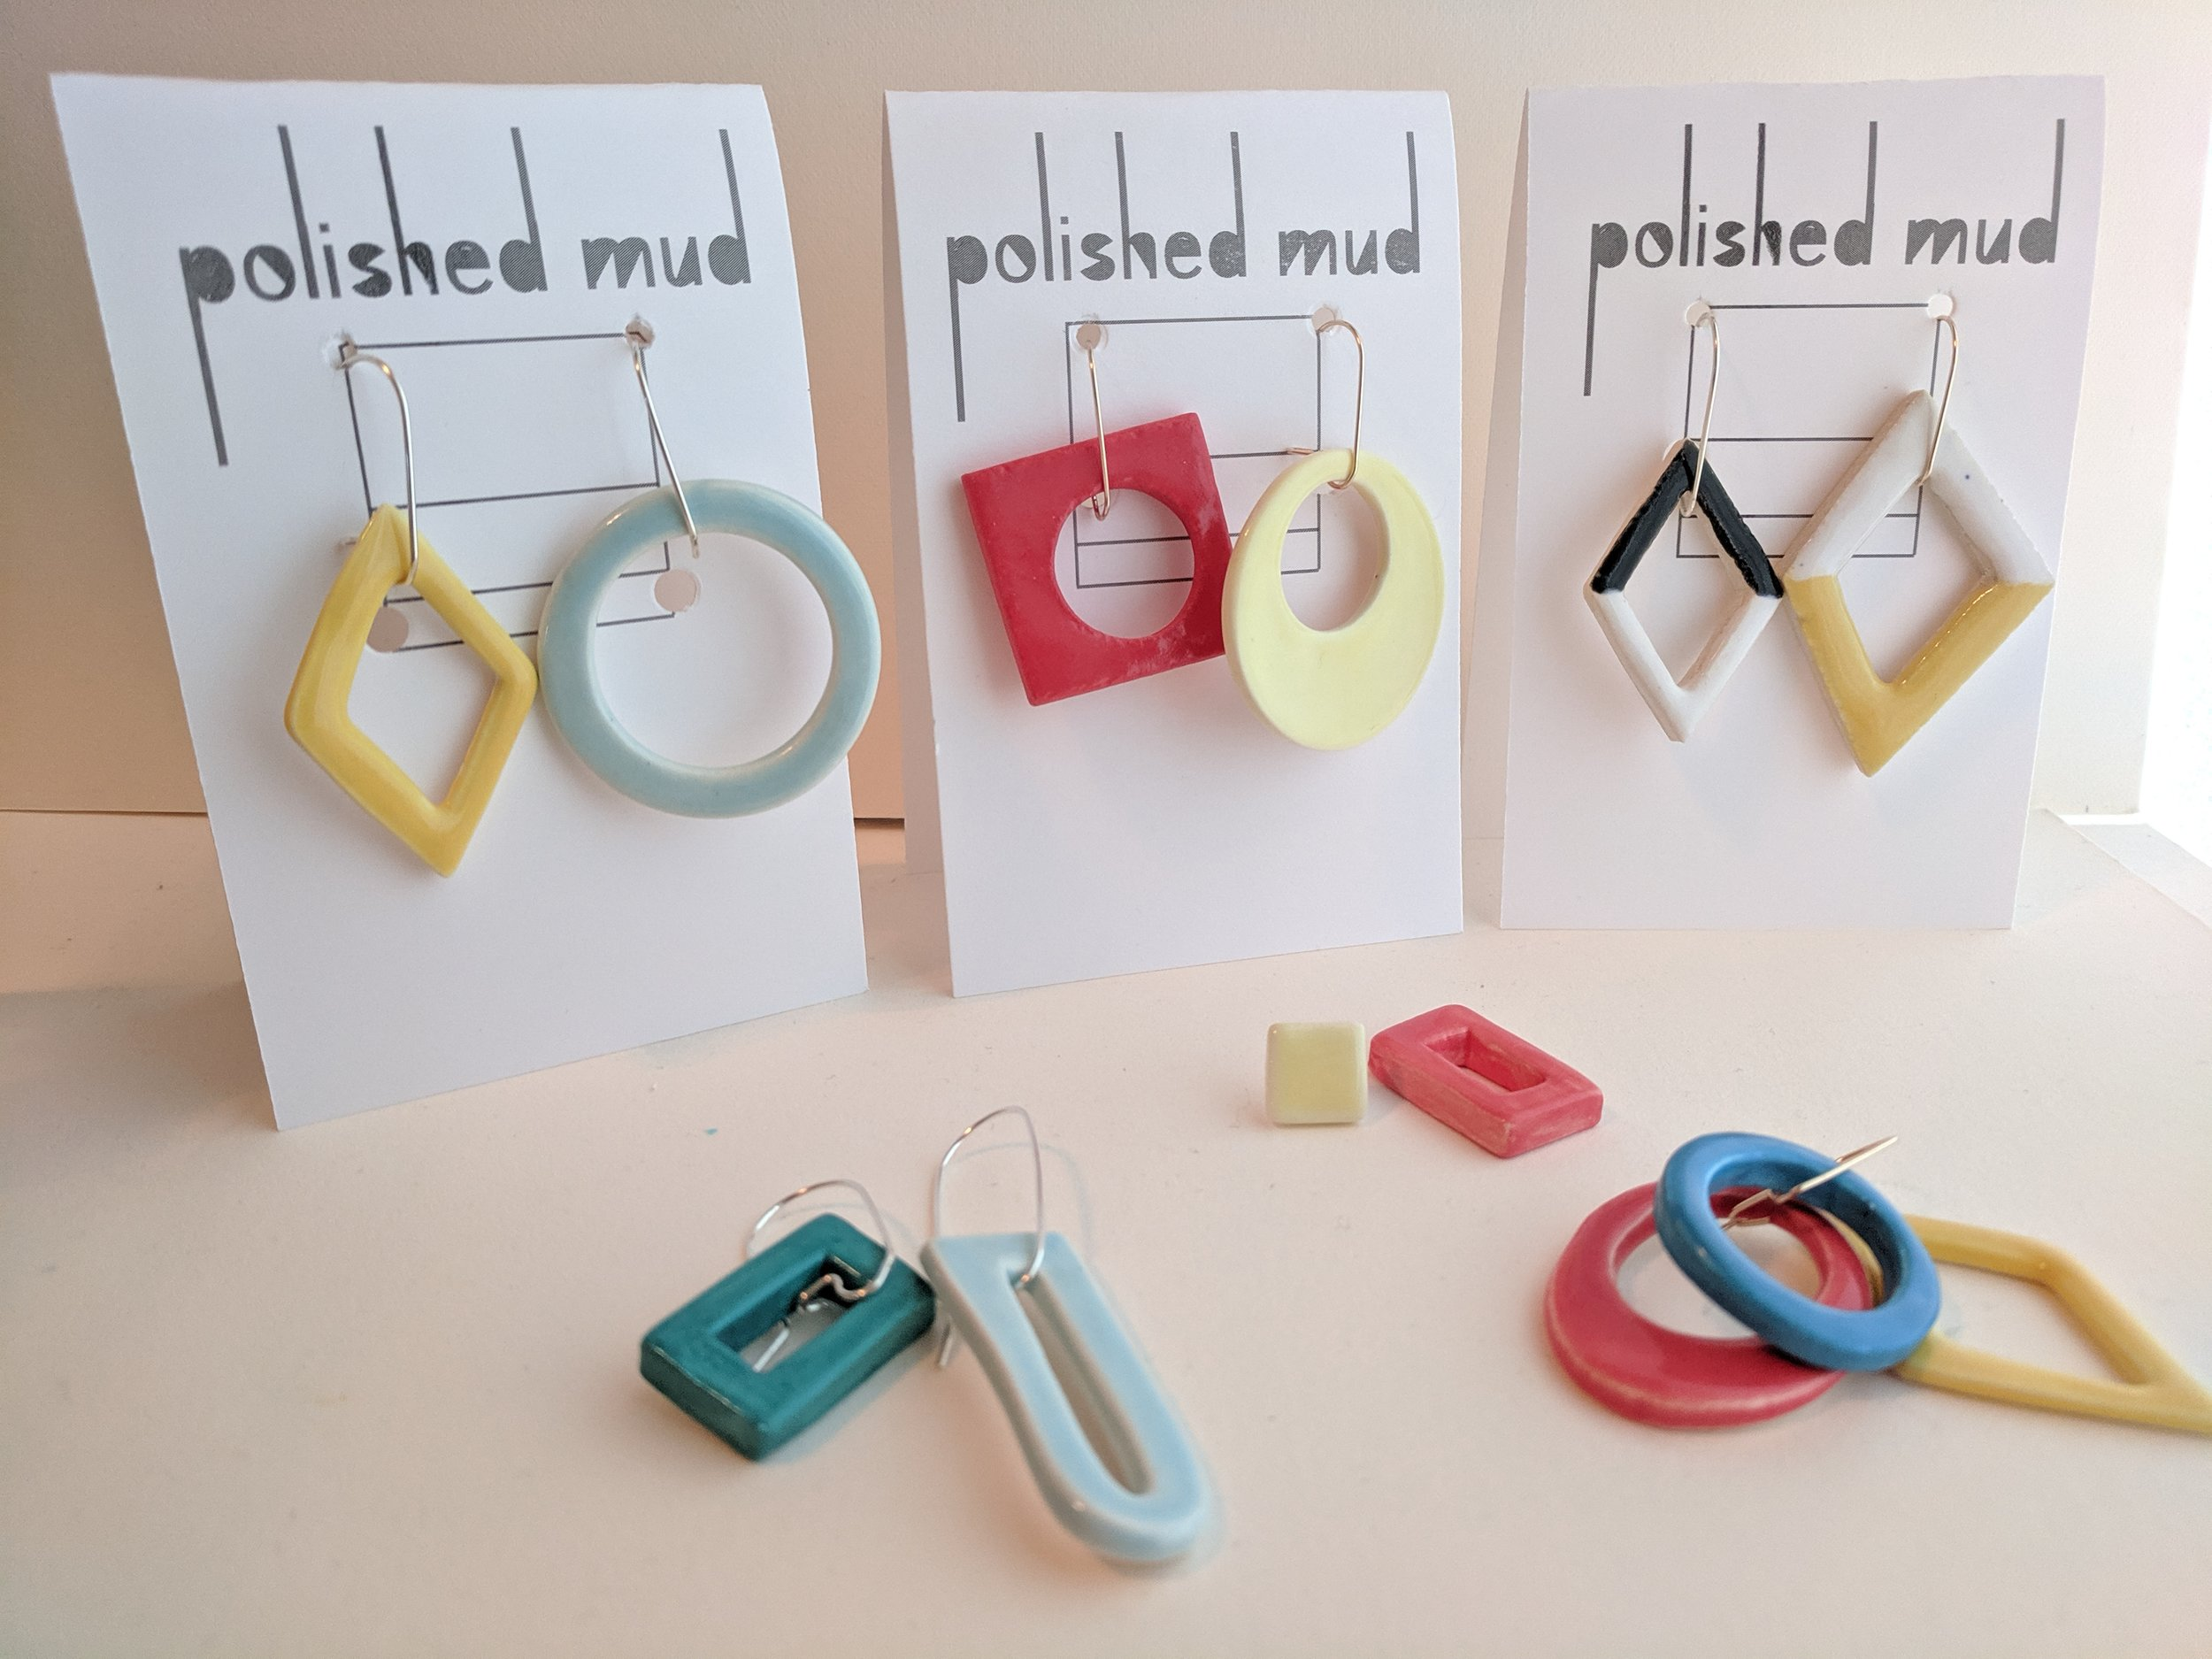 A sampling of Polsihed Mud's handmade wares